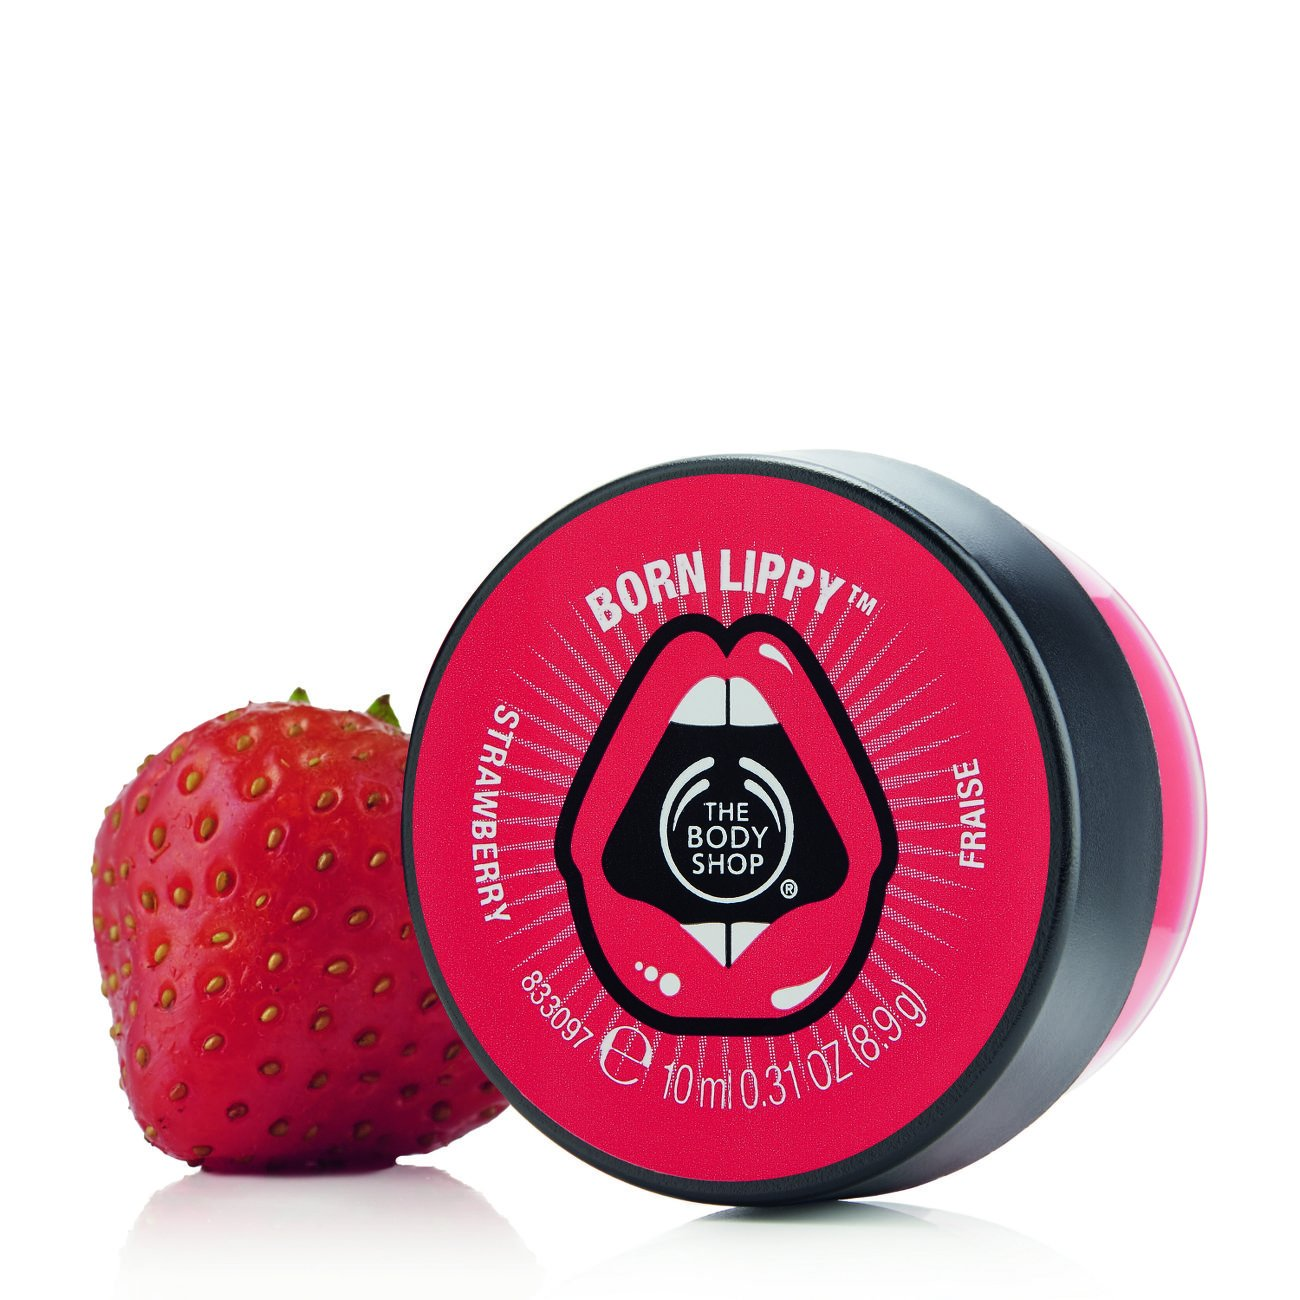 The Body Shop Born Lippy Pot Lip Balm Strawberry